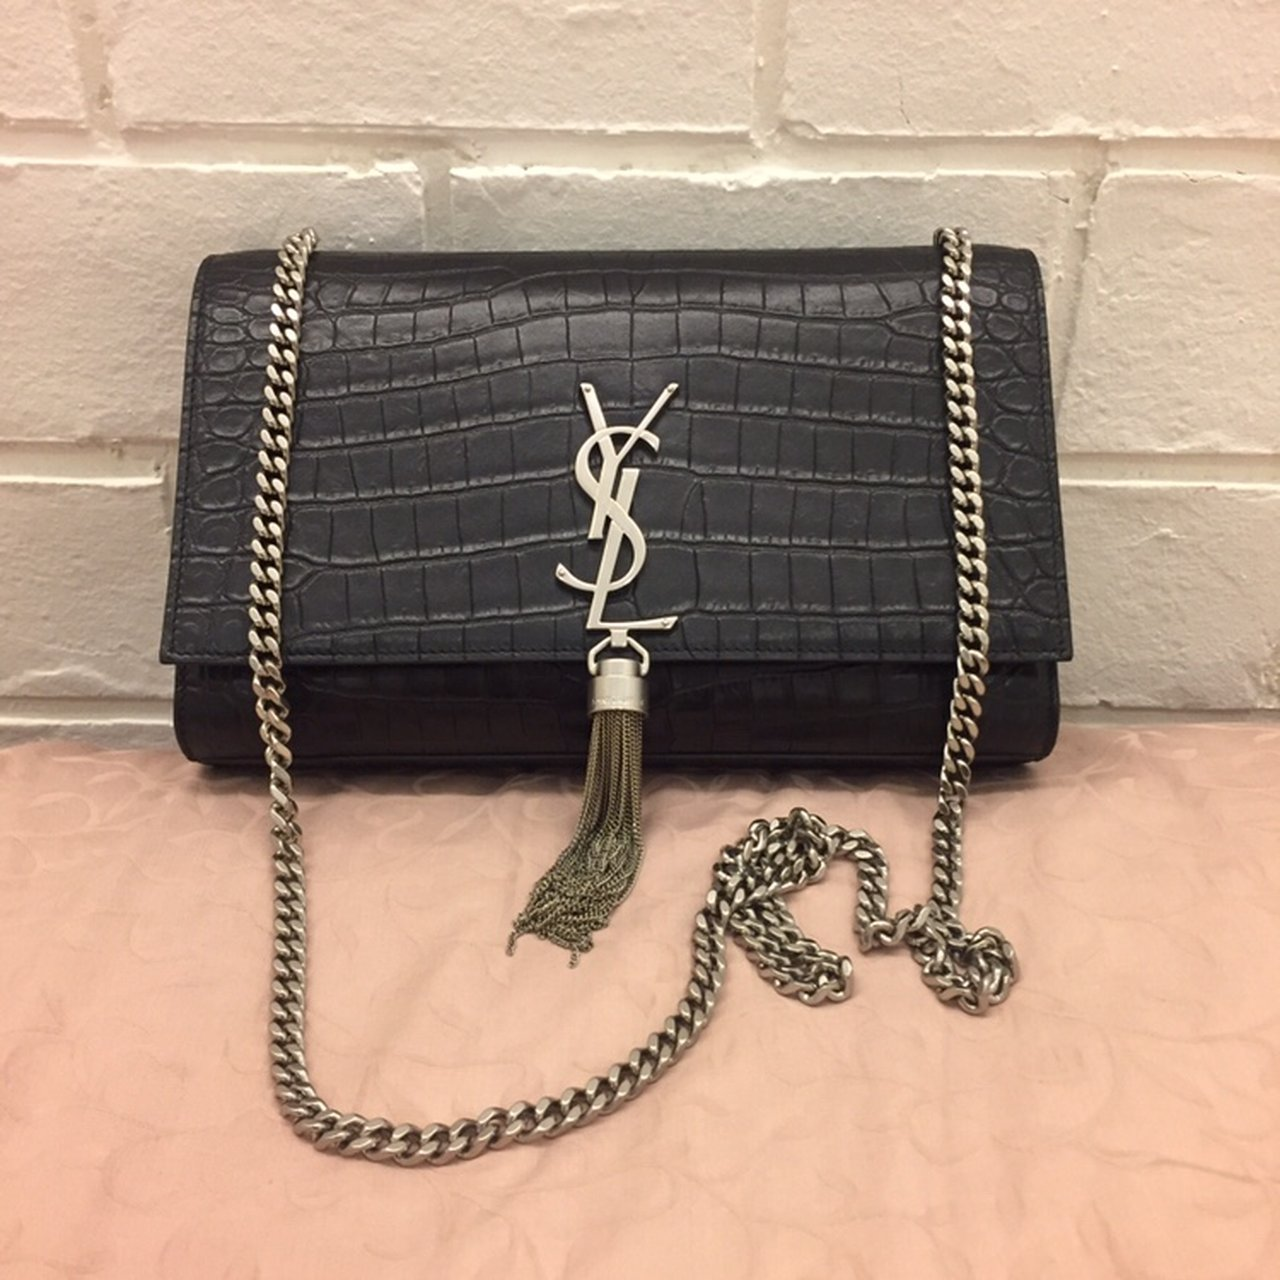 5b74e5d96f82  bibibabibu. 6 months ago. United Kingdom. Saint Laurent Medium Kate  Monogram Tassel bag ...